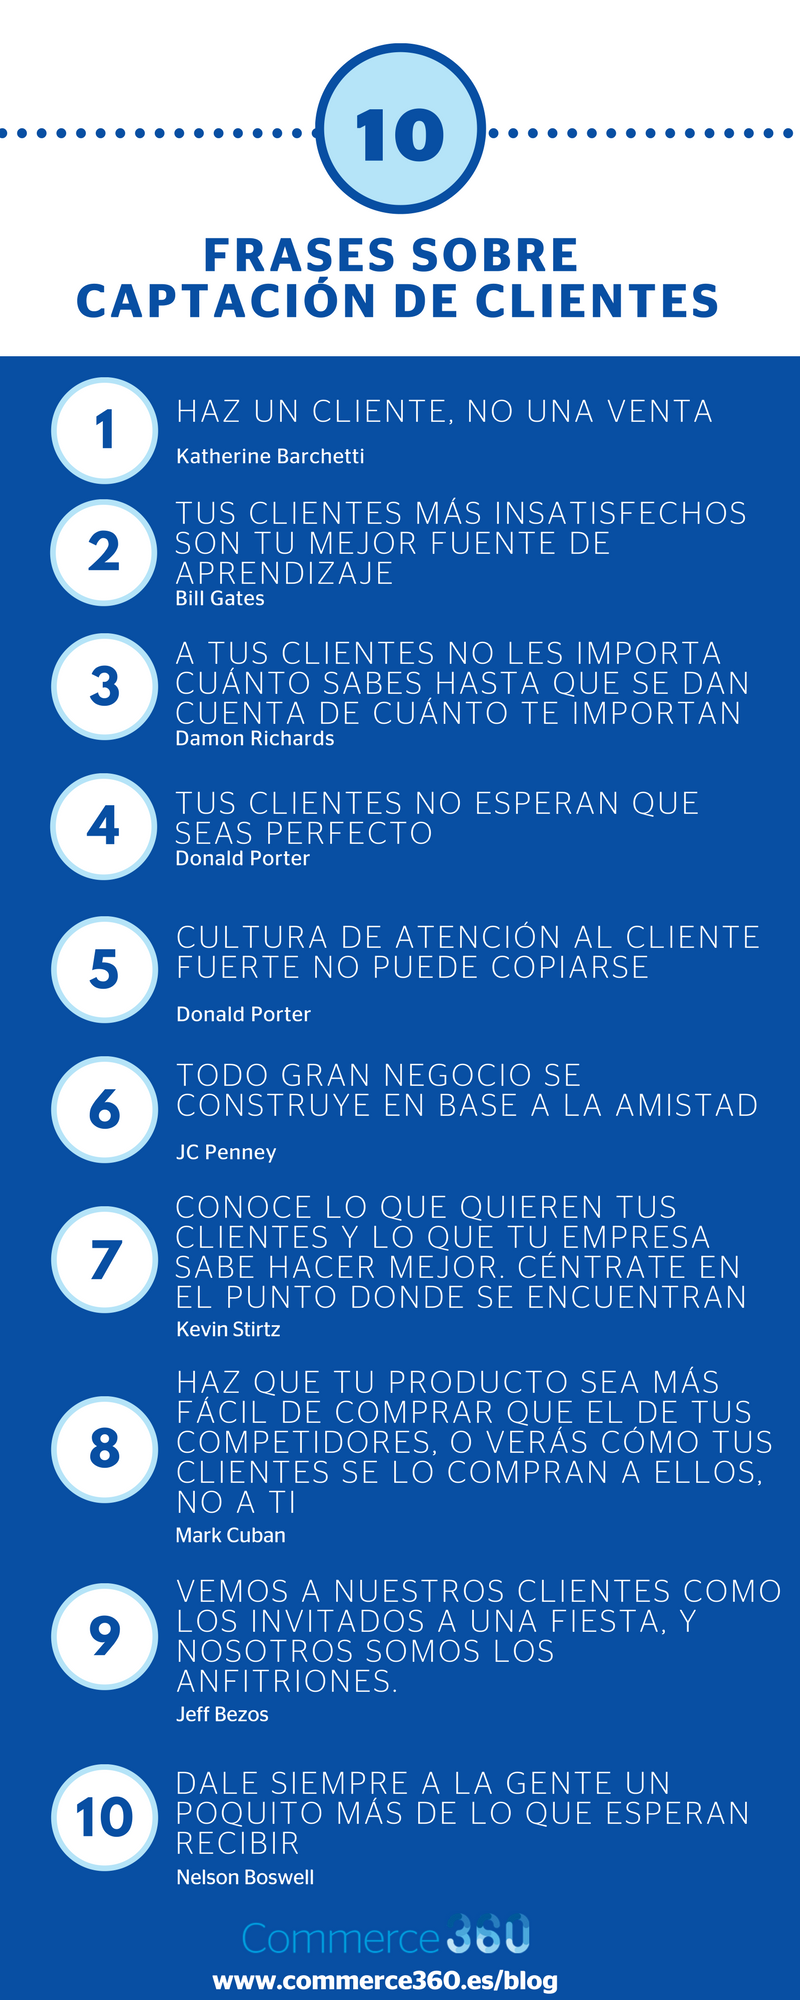 10 Frases Para Captar Clientes Infografia Marketing Citas